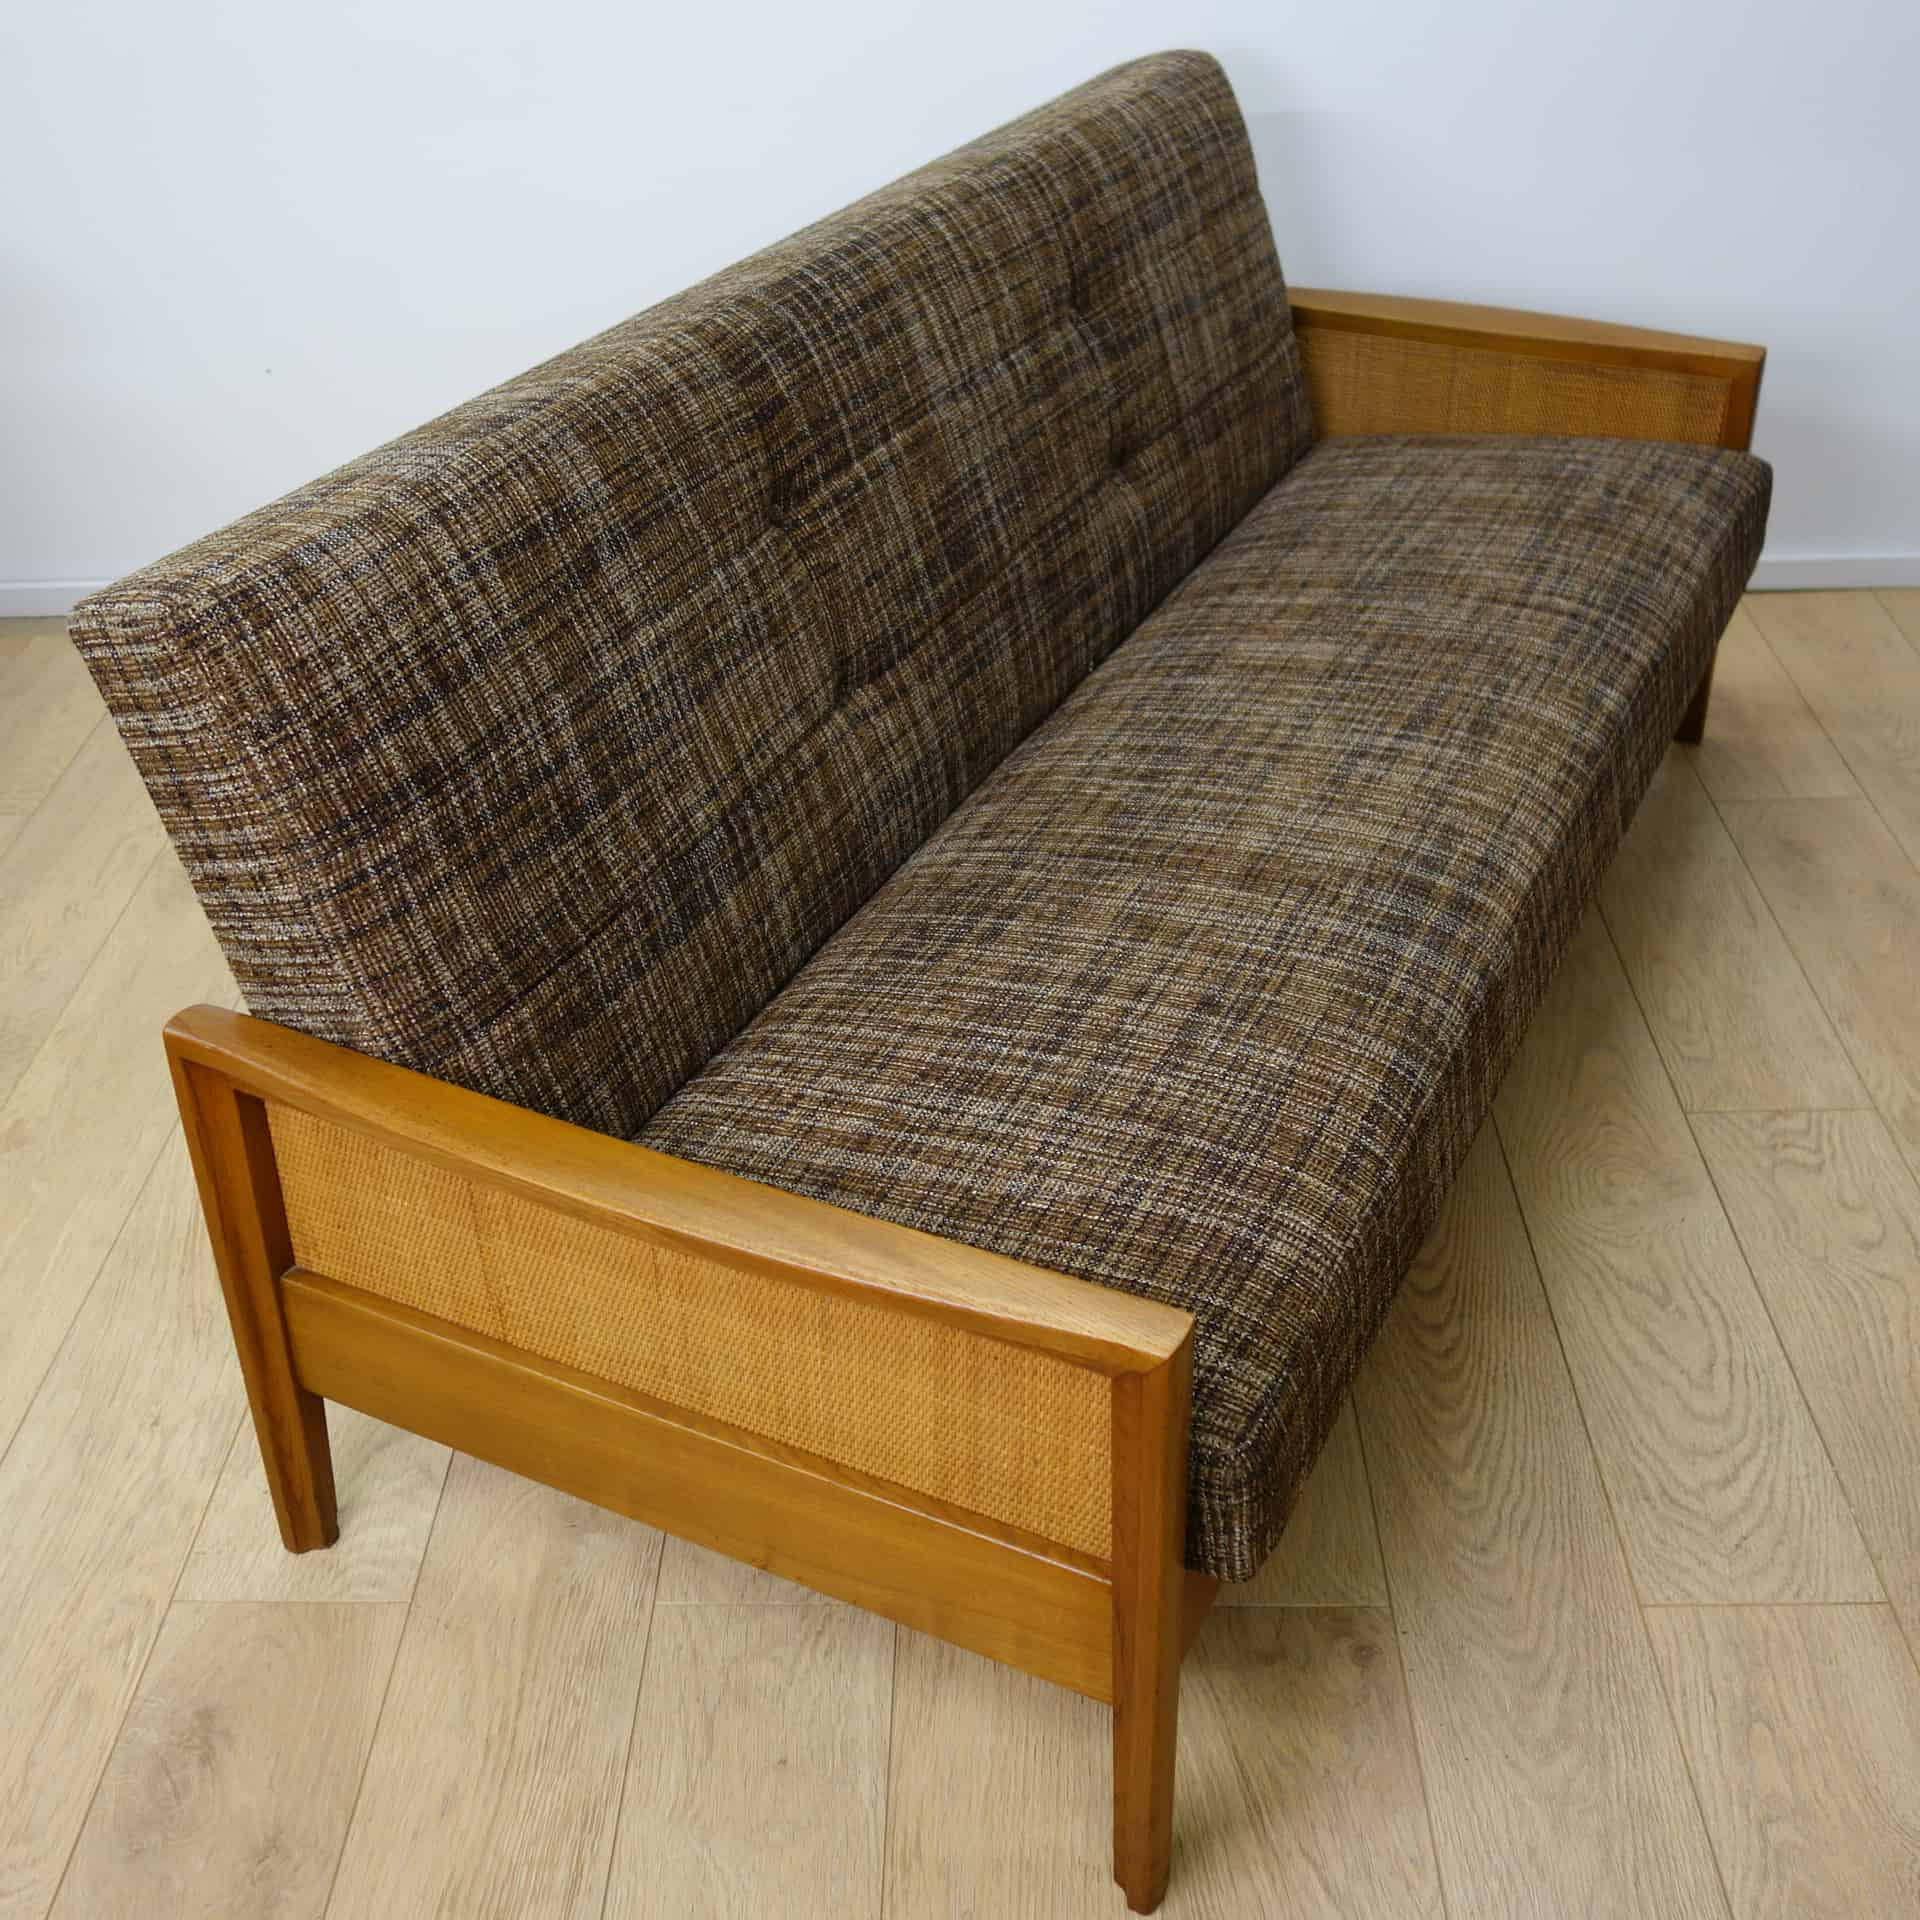 cane sofa bed red literary absolute write 1960s with rattan sides mark parrish mid